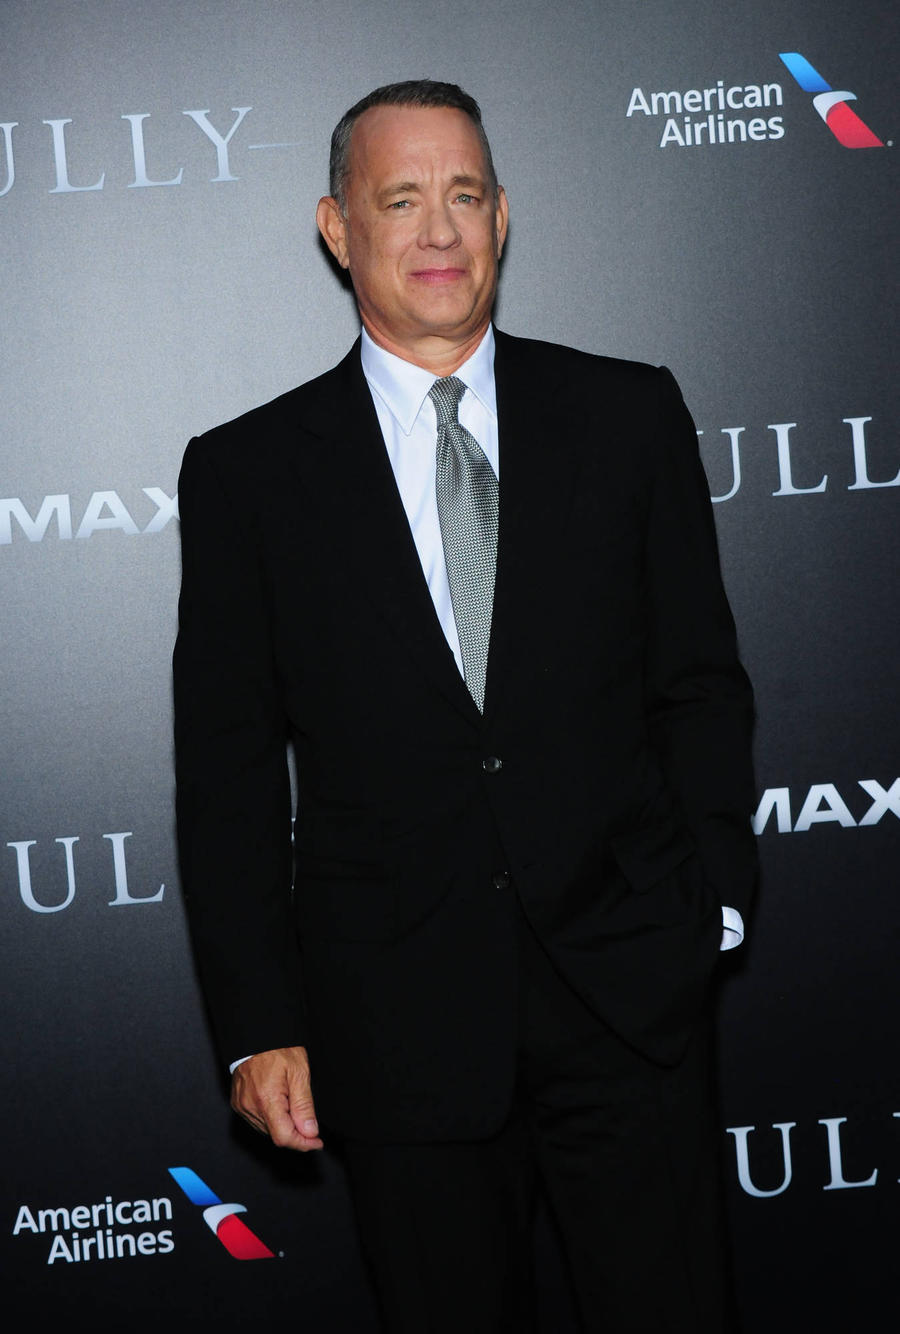 Tom Hanks 'Haunted' By Childhood Moment When He Ignored His Son